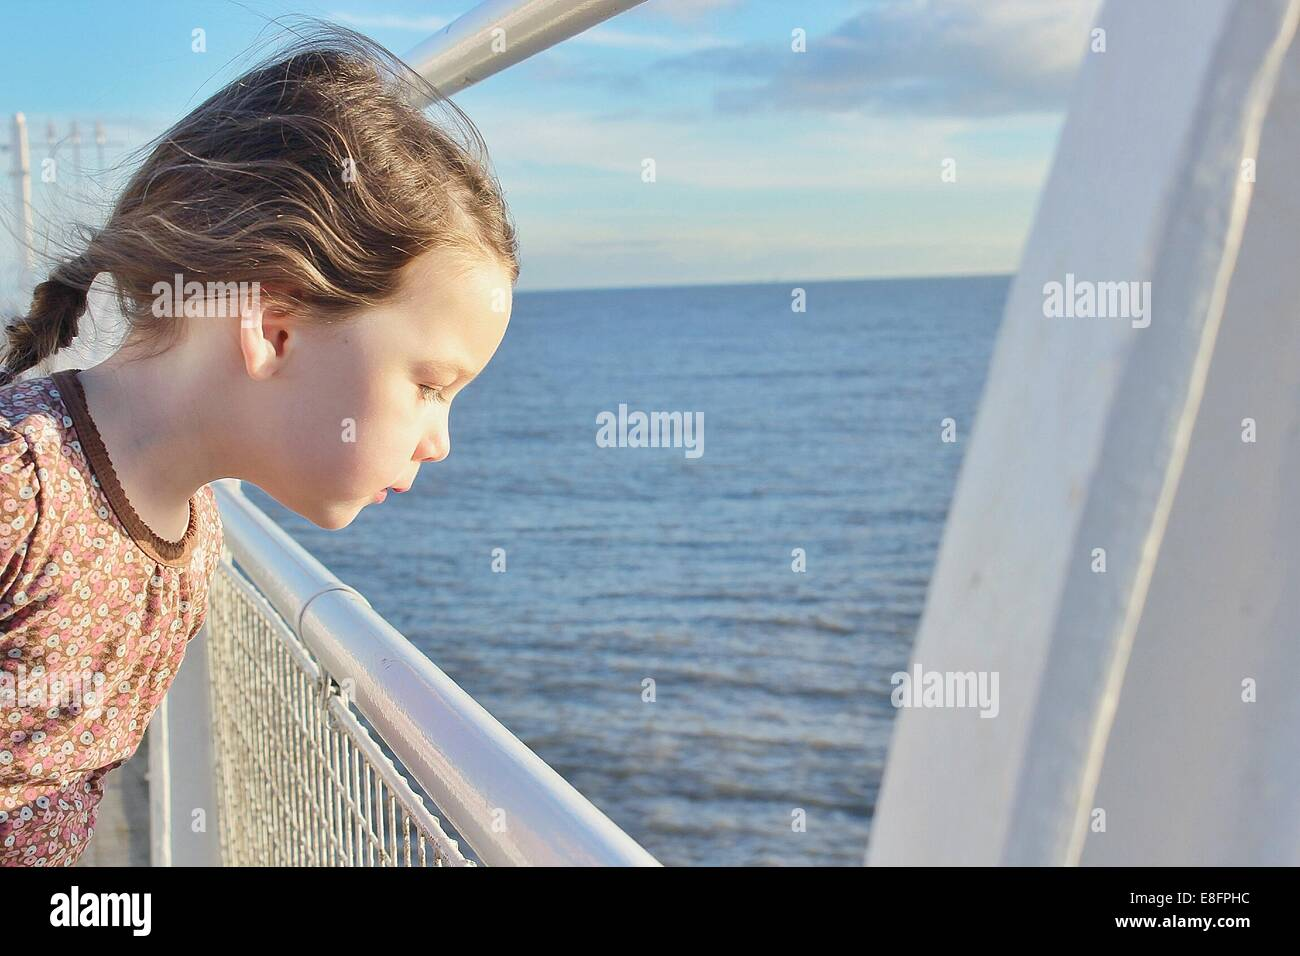 Girl standing on boat looking out to sea - Stock Image